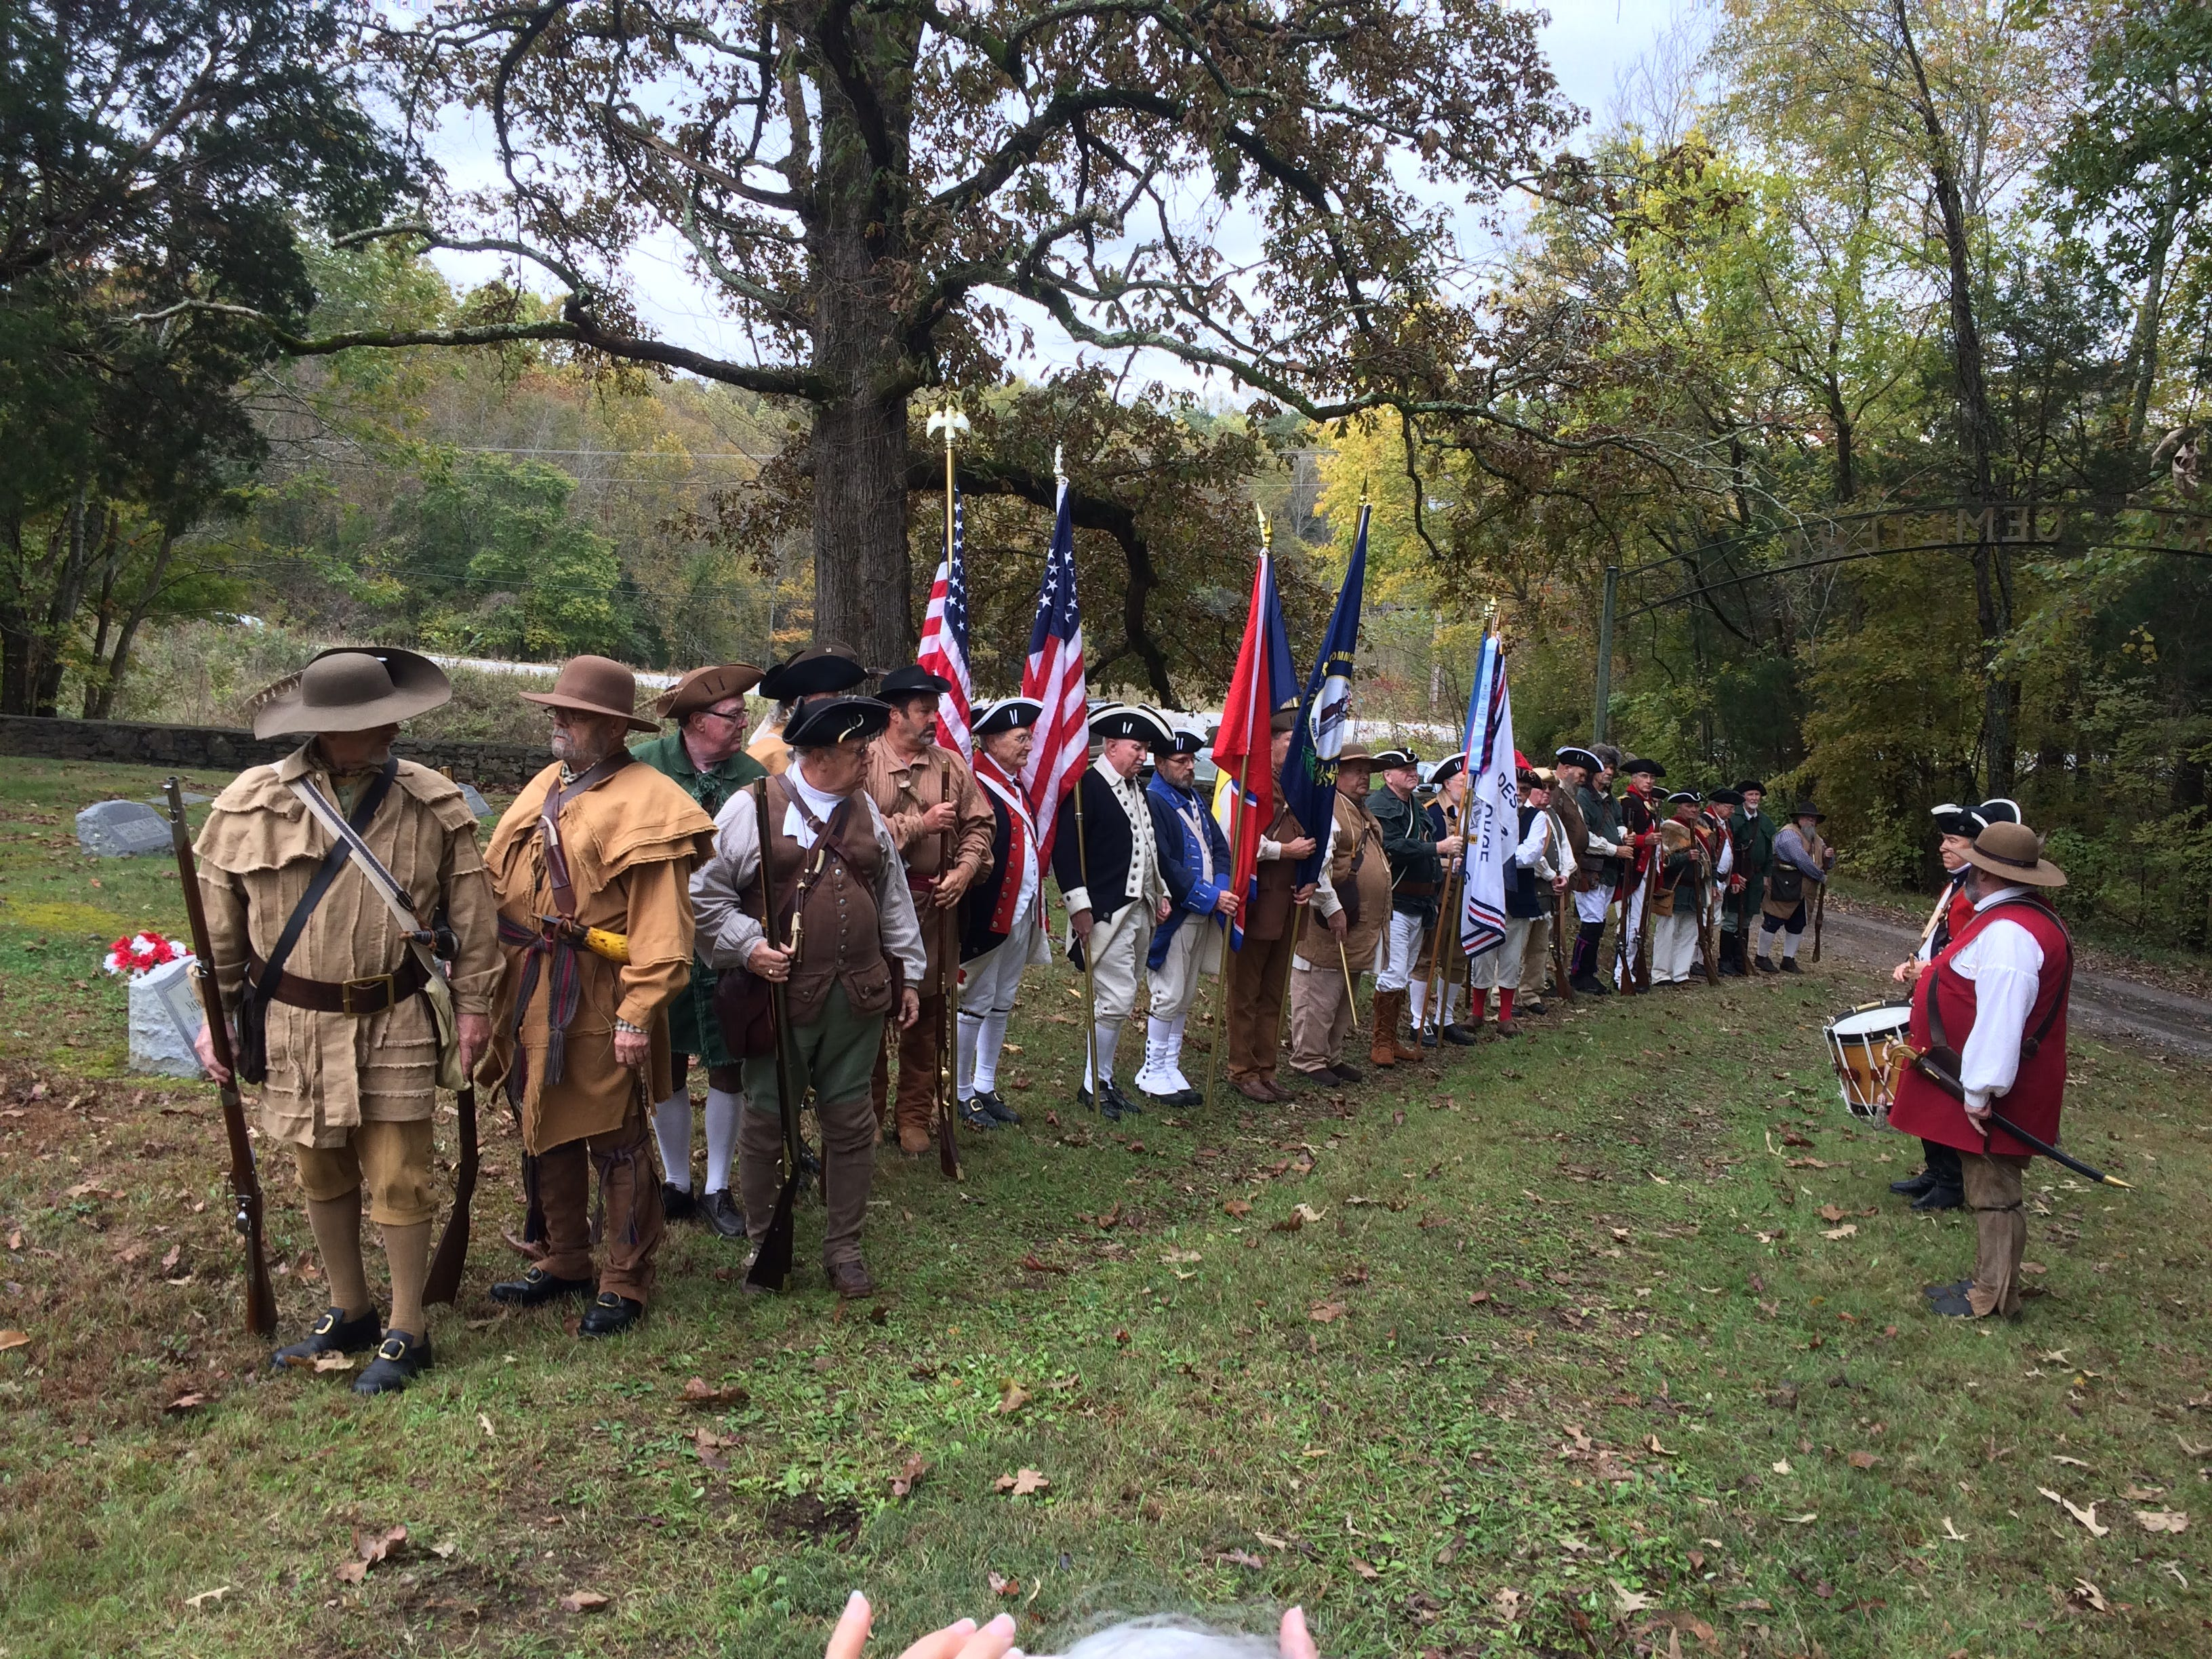 SAR members dressed in period outfits at the Ceremony honoring Gideon Carr at Stuart Cemetery in Dickson County.